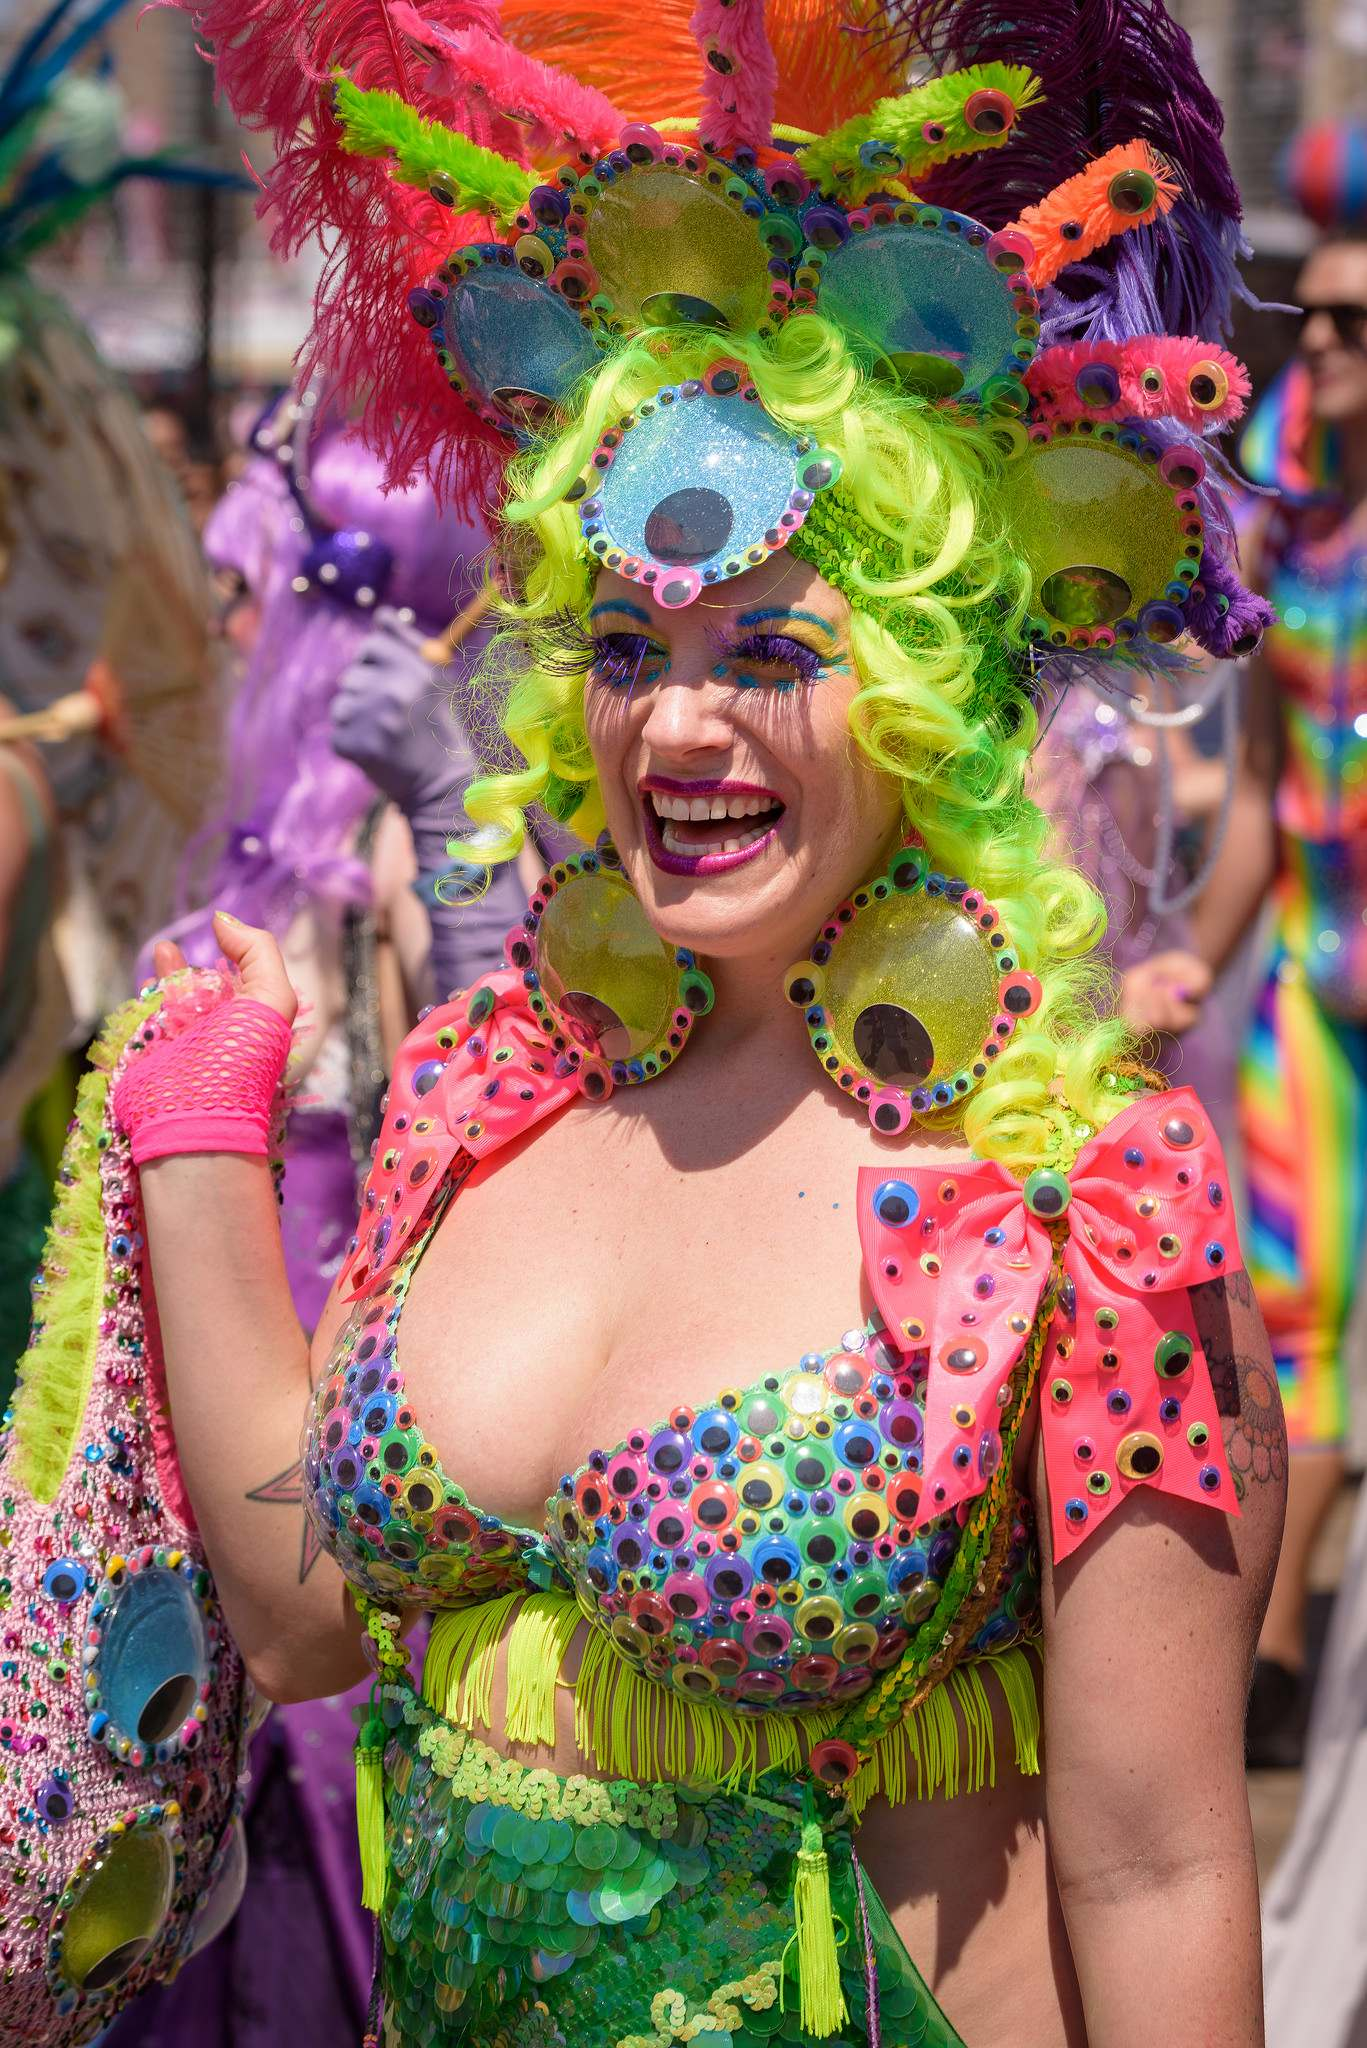 mermaid parade7 2016 Coney Island Mermaid Parade in NYC